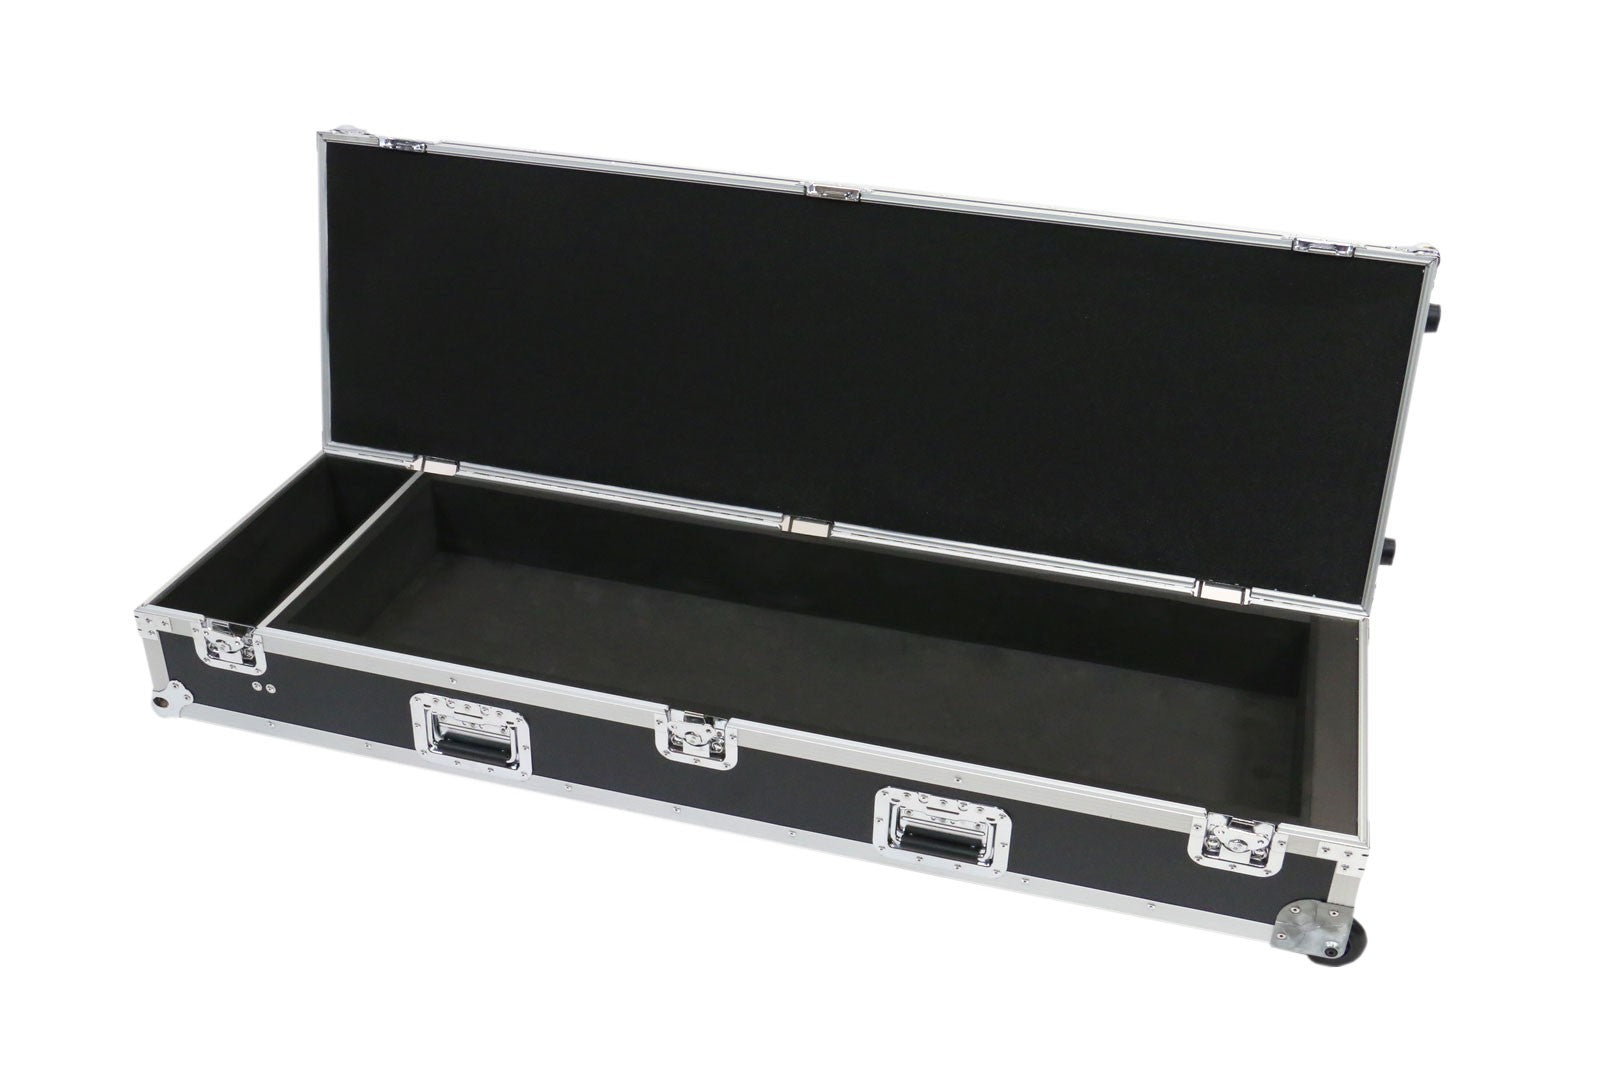 OSP ATA-XF8-WC Case with Recessed Casters for Yamaha Motif XF8, ES8, & XS8*